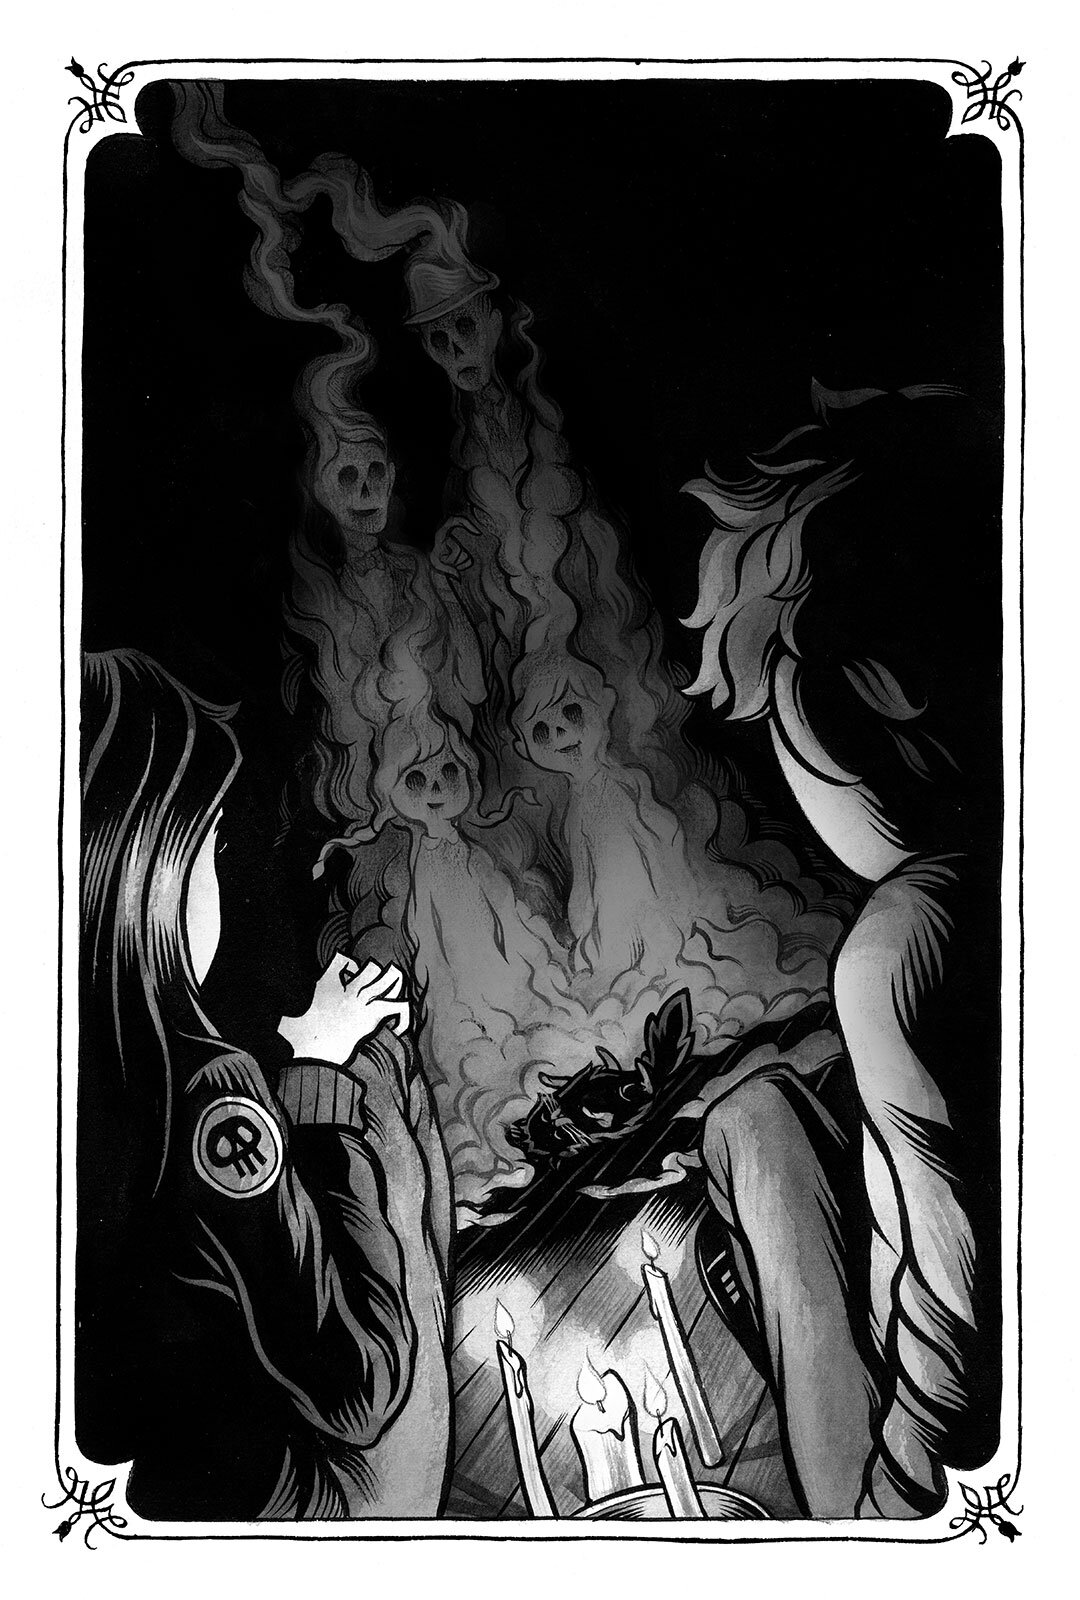 Interior illustration for  The Year of Shadows